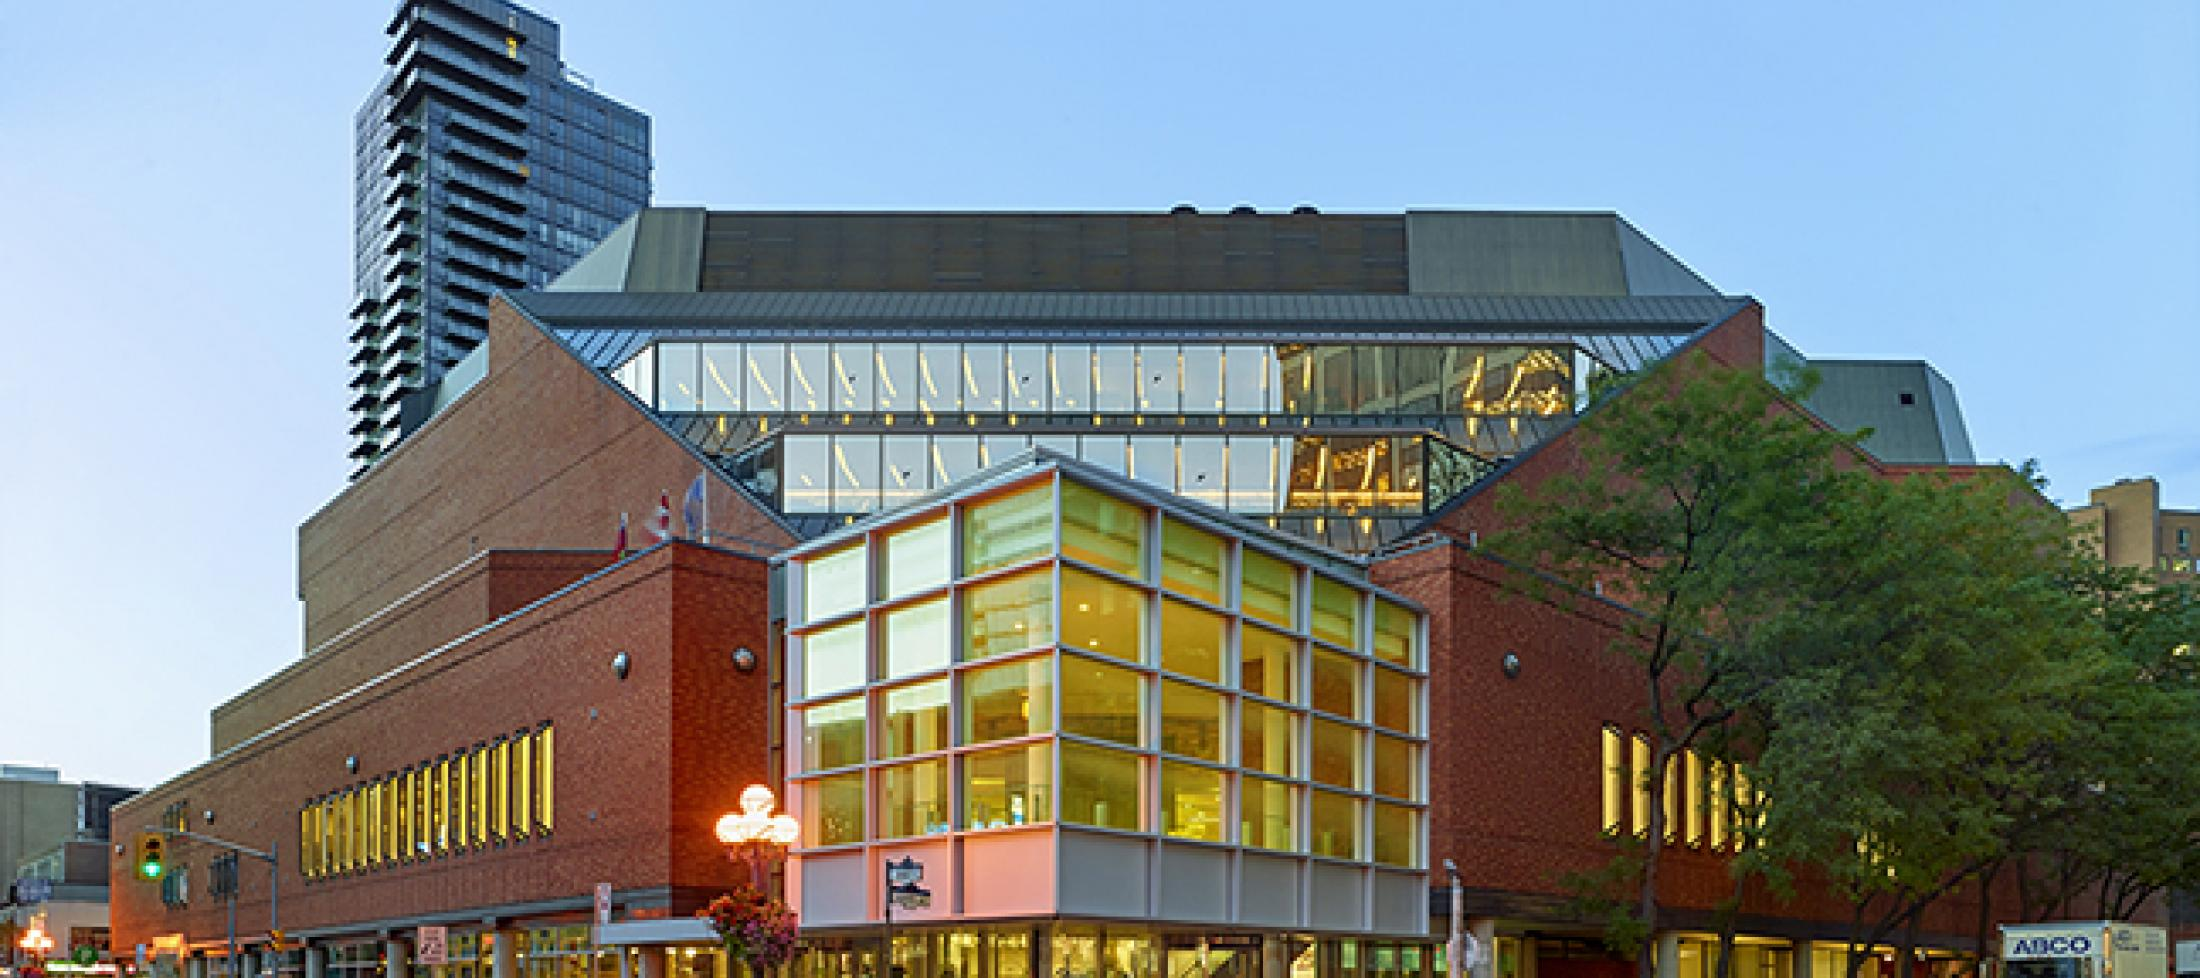 Exterior view of the Toronto Reference Library